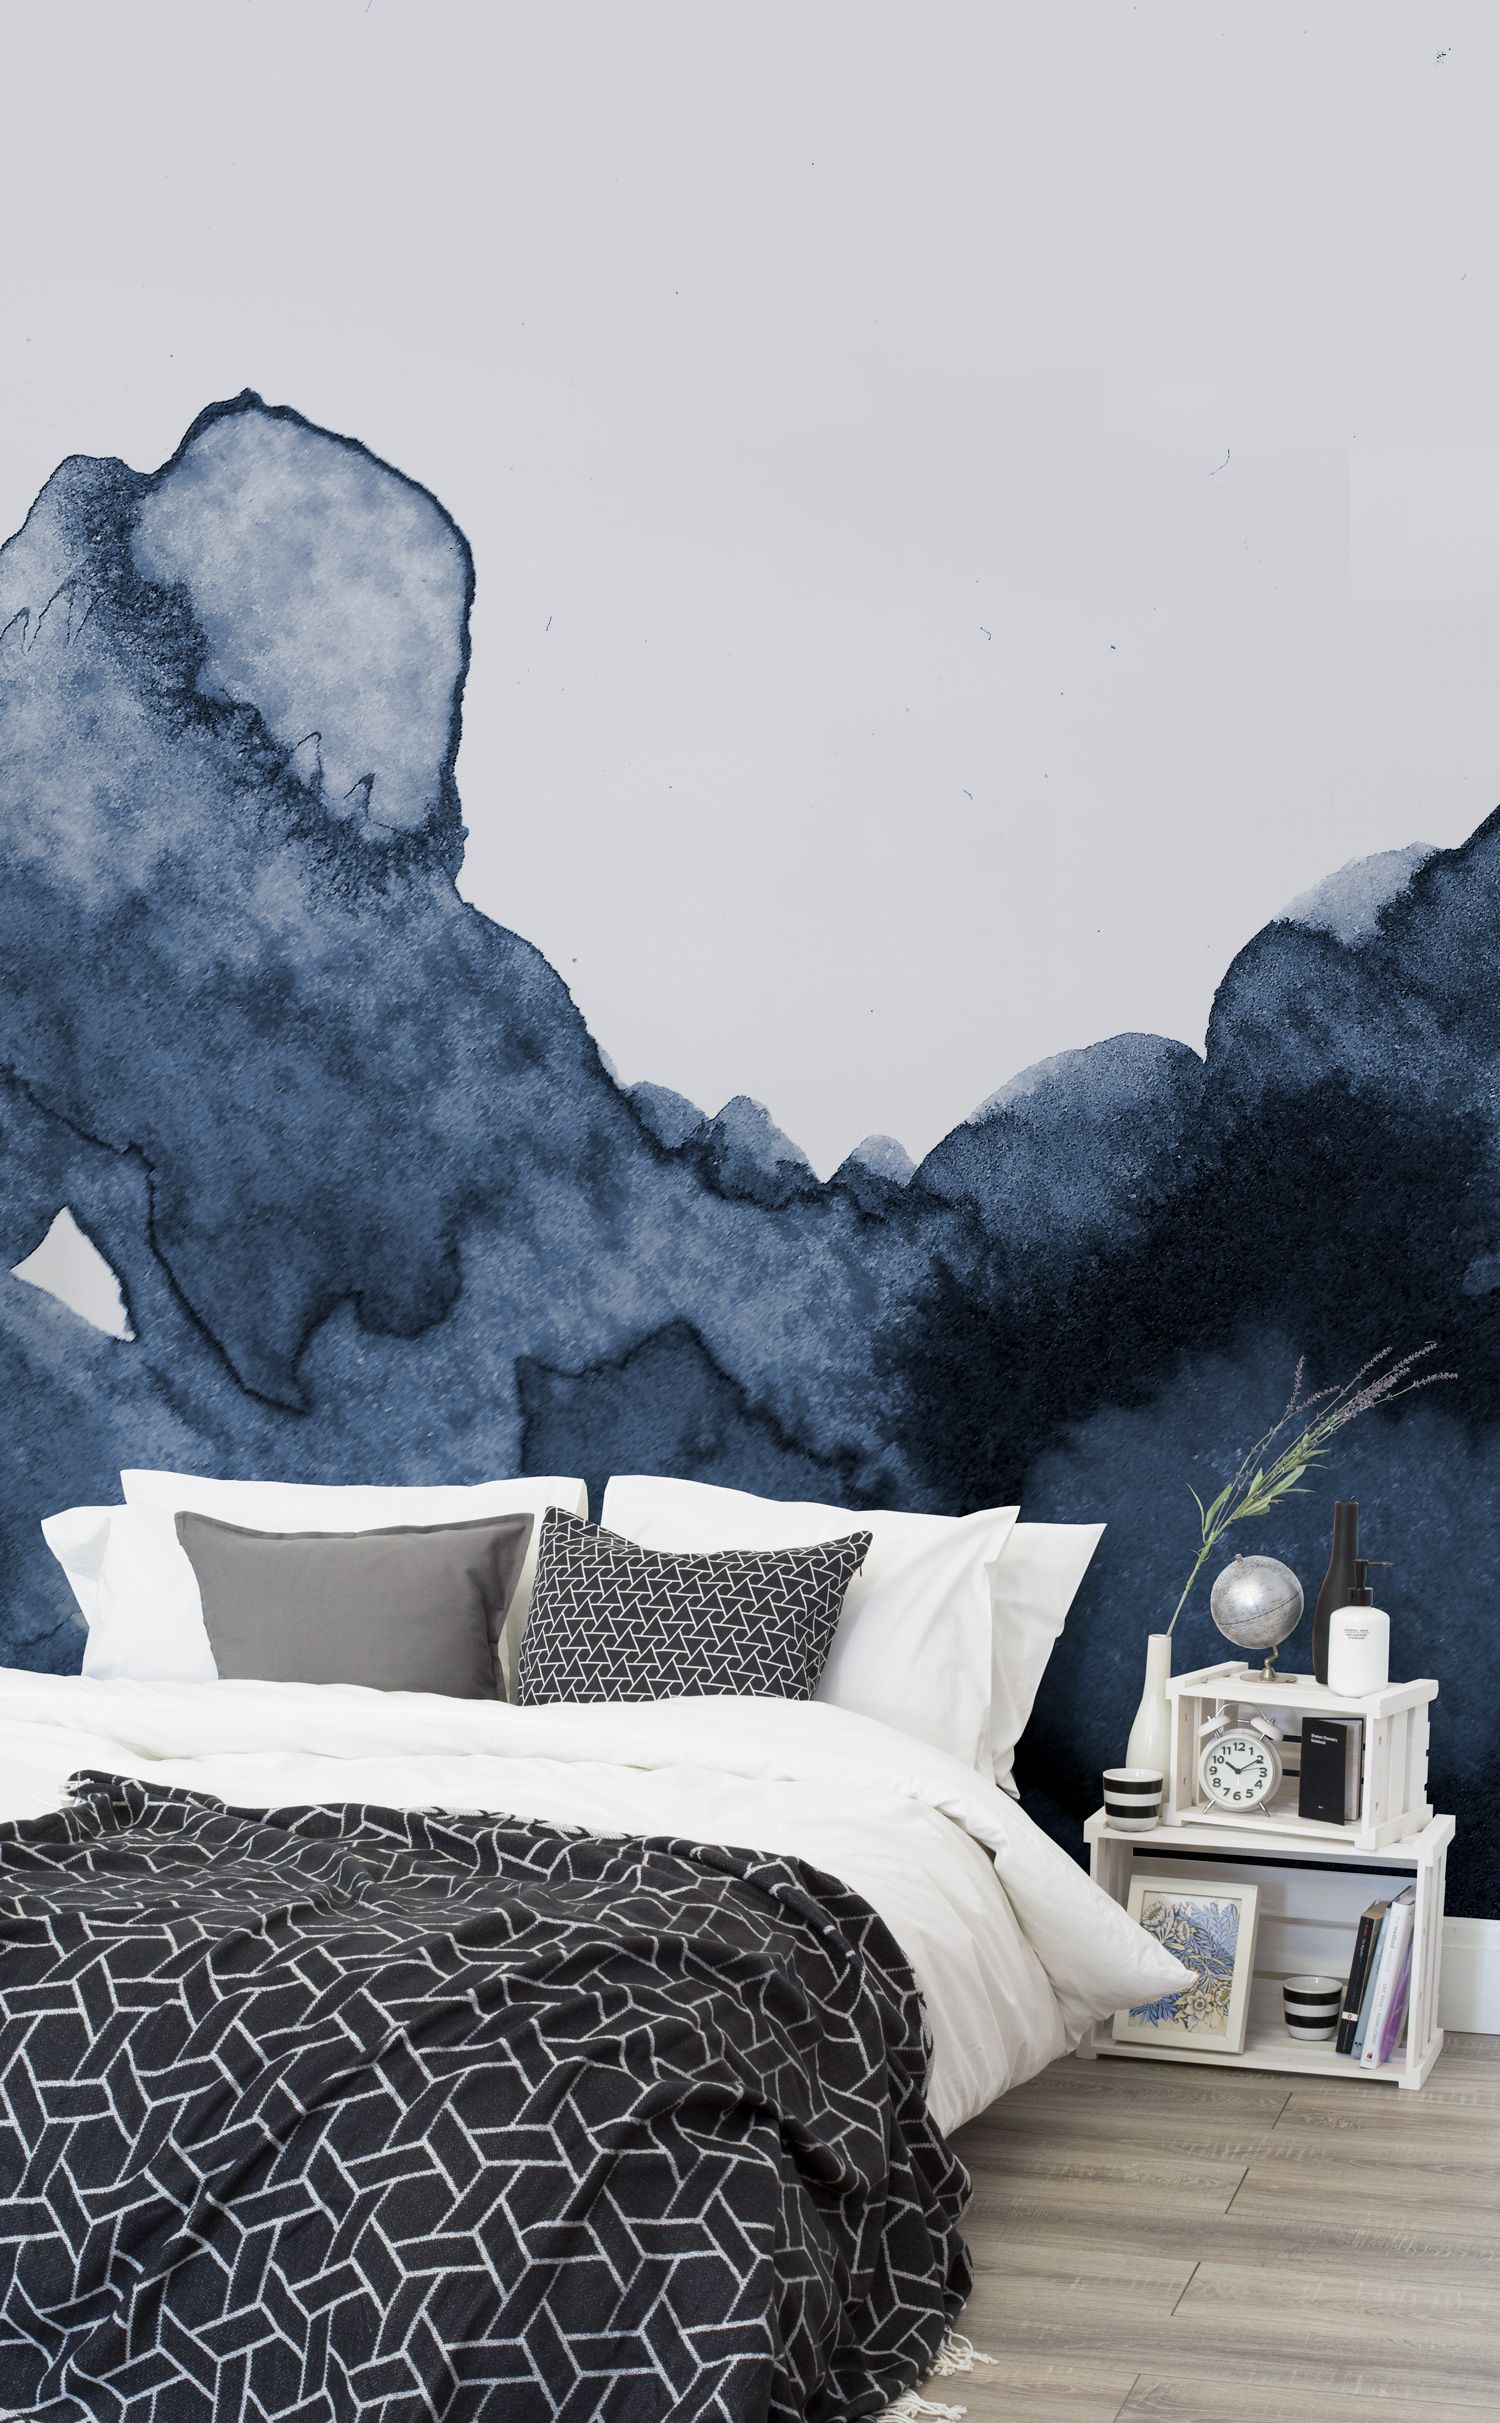 Schlafzimmer Einrichten Pinterest Deep Blue Waves Watercolor Wall Mural Interieur Pinterest